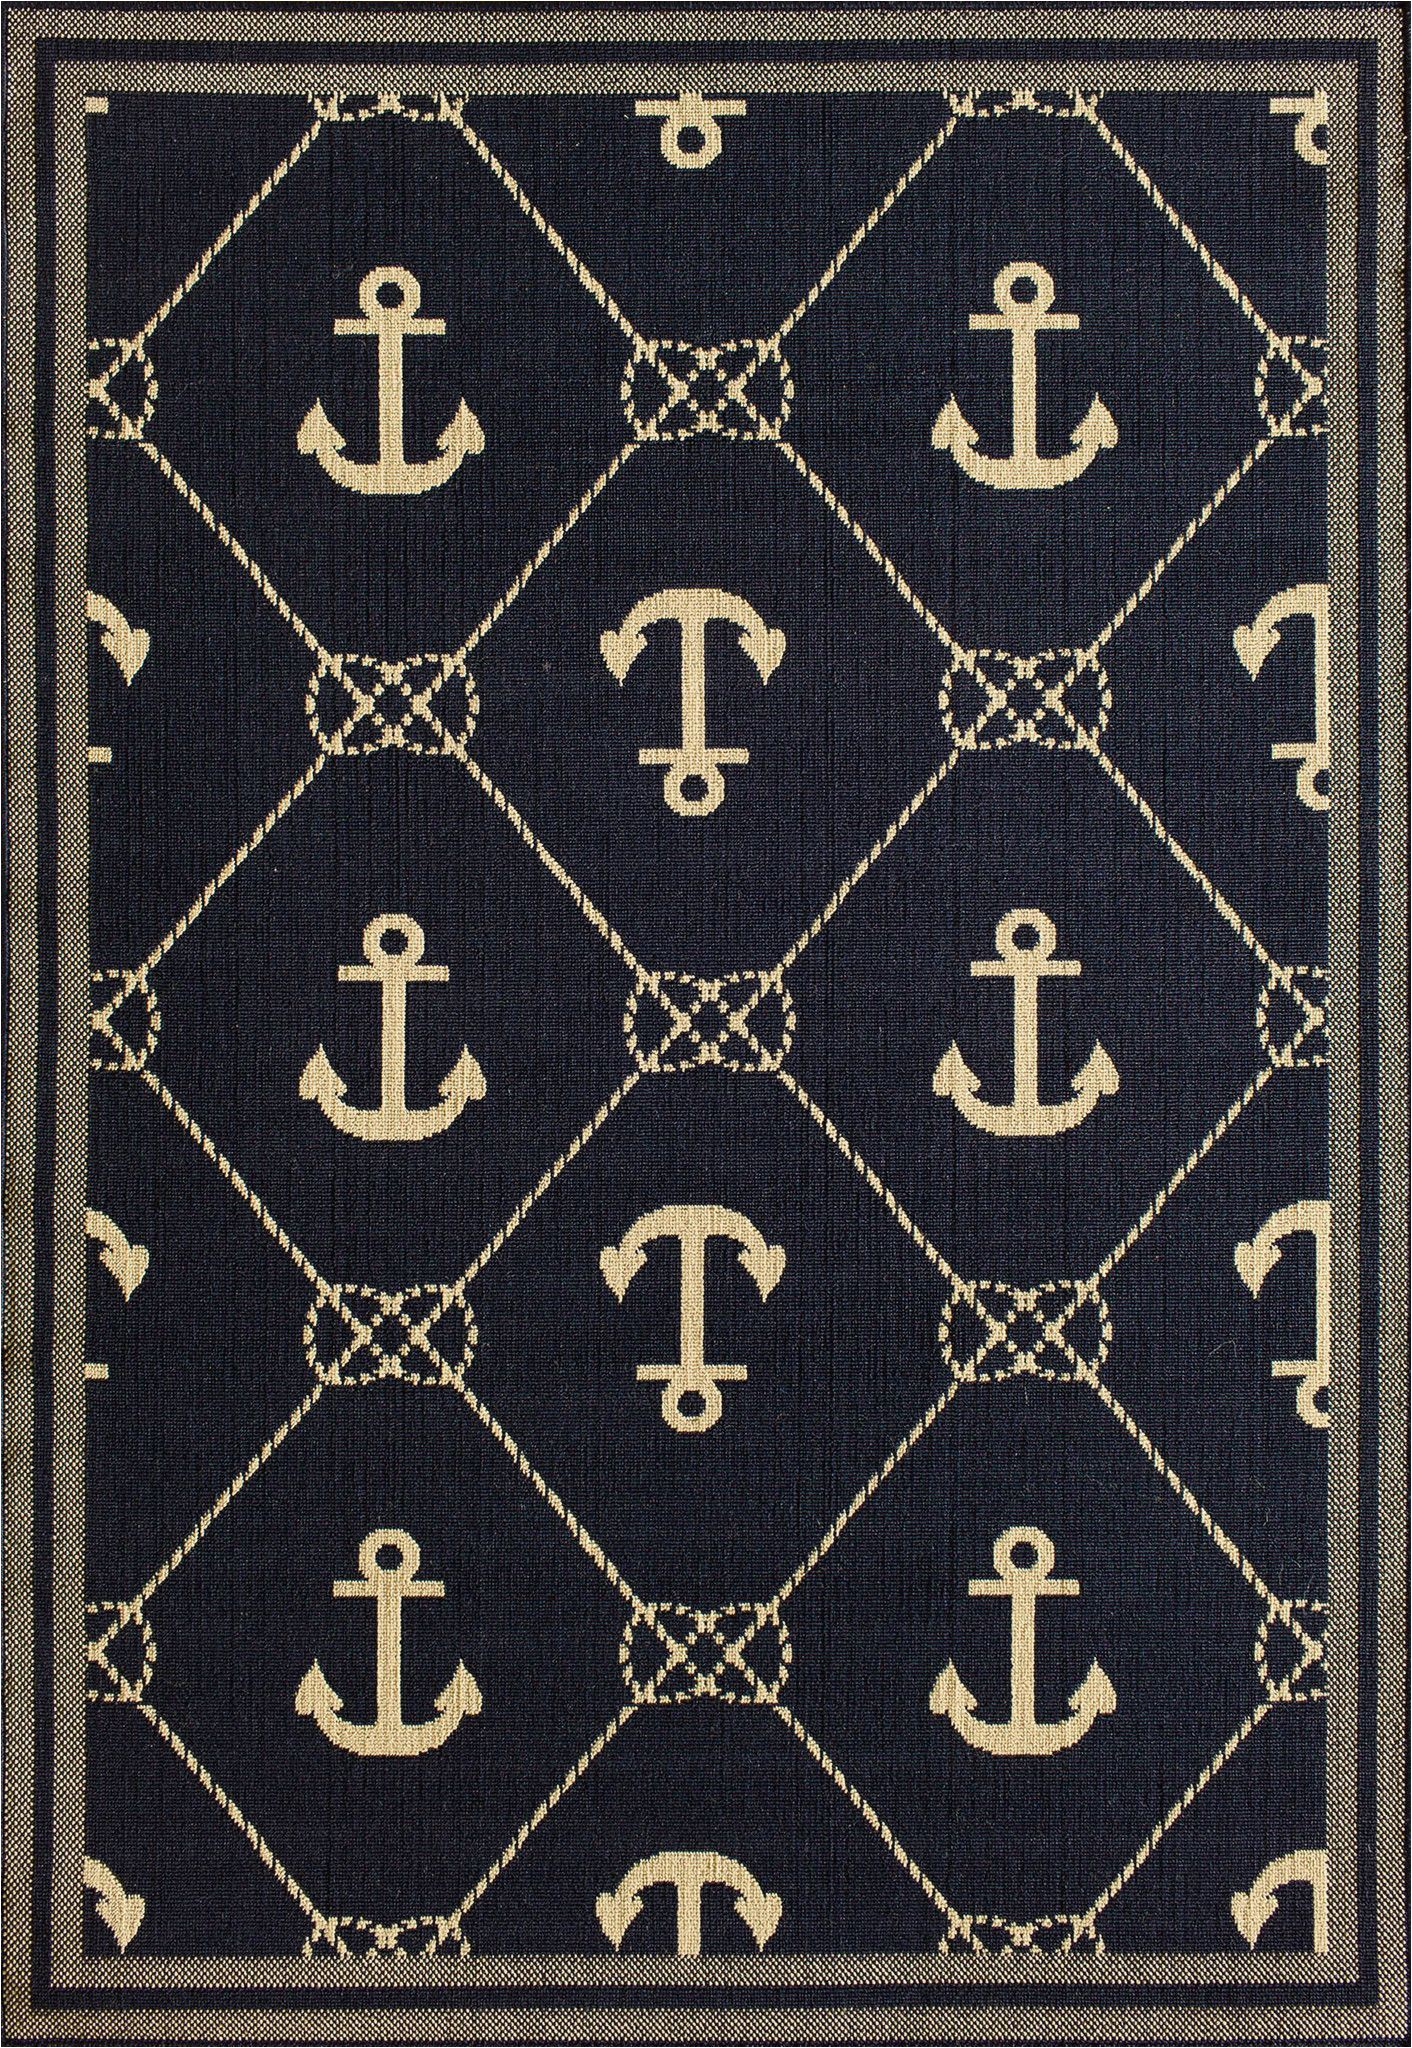 Tributary Indoor Outdoor area Rug Tributary 6004 42 Tributary Anchor Navy Ivory Rug